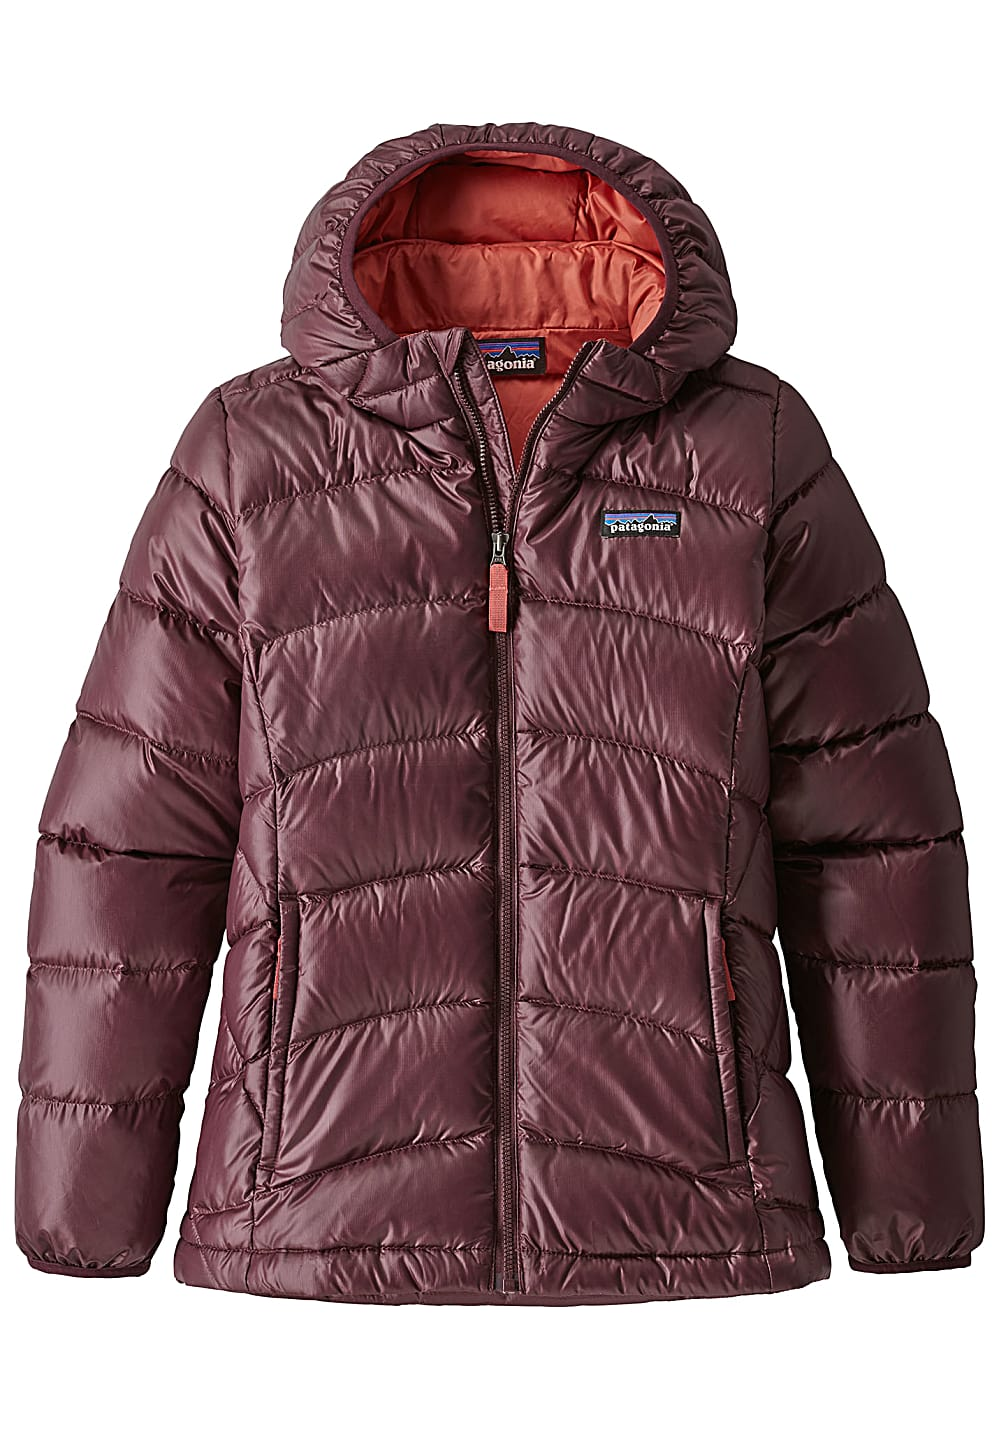 Girlsjacken - Patagonia Hi Loft Down Outdoorjacke für Mädchen Rot - Onlineshop Planet Sports